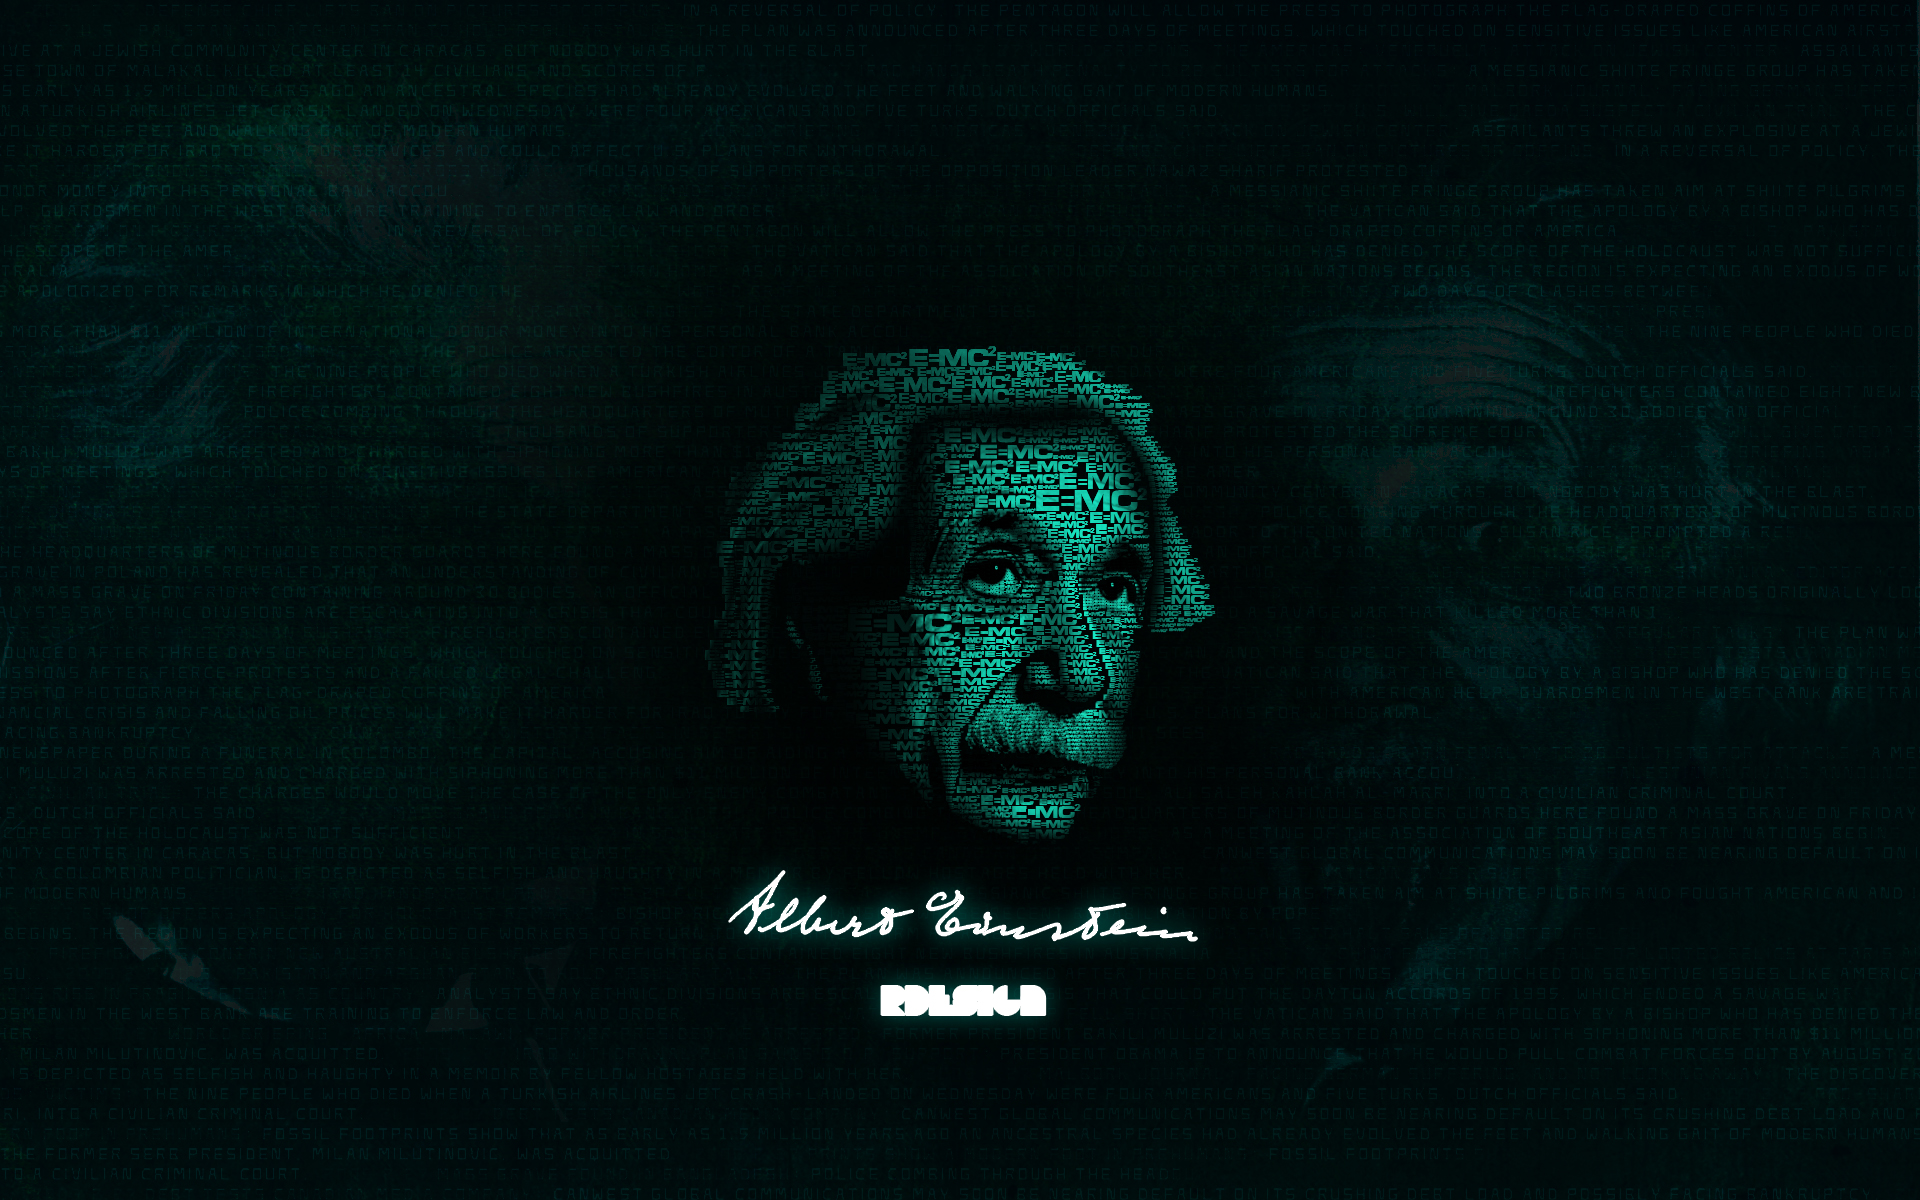 Albert einstein full hd wallpaper and background image - Albert einstein hd images ...